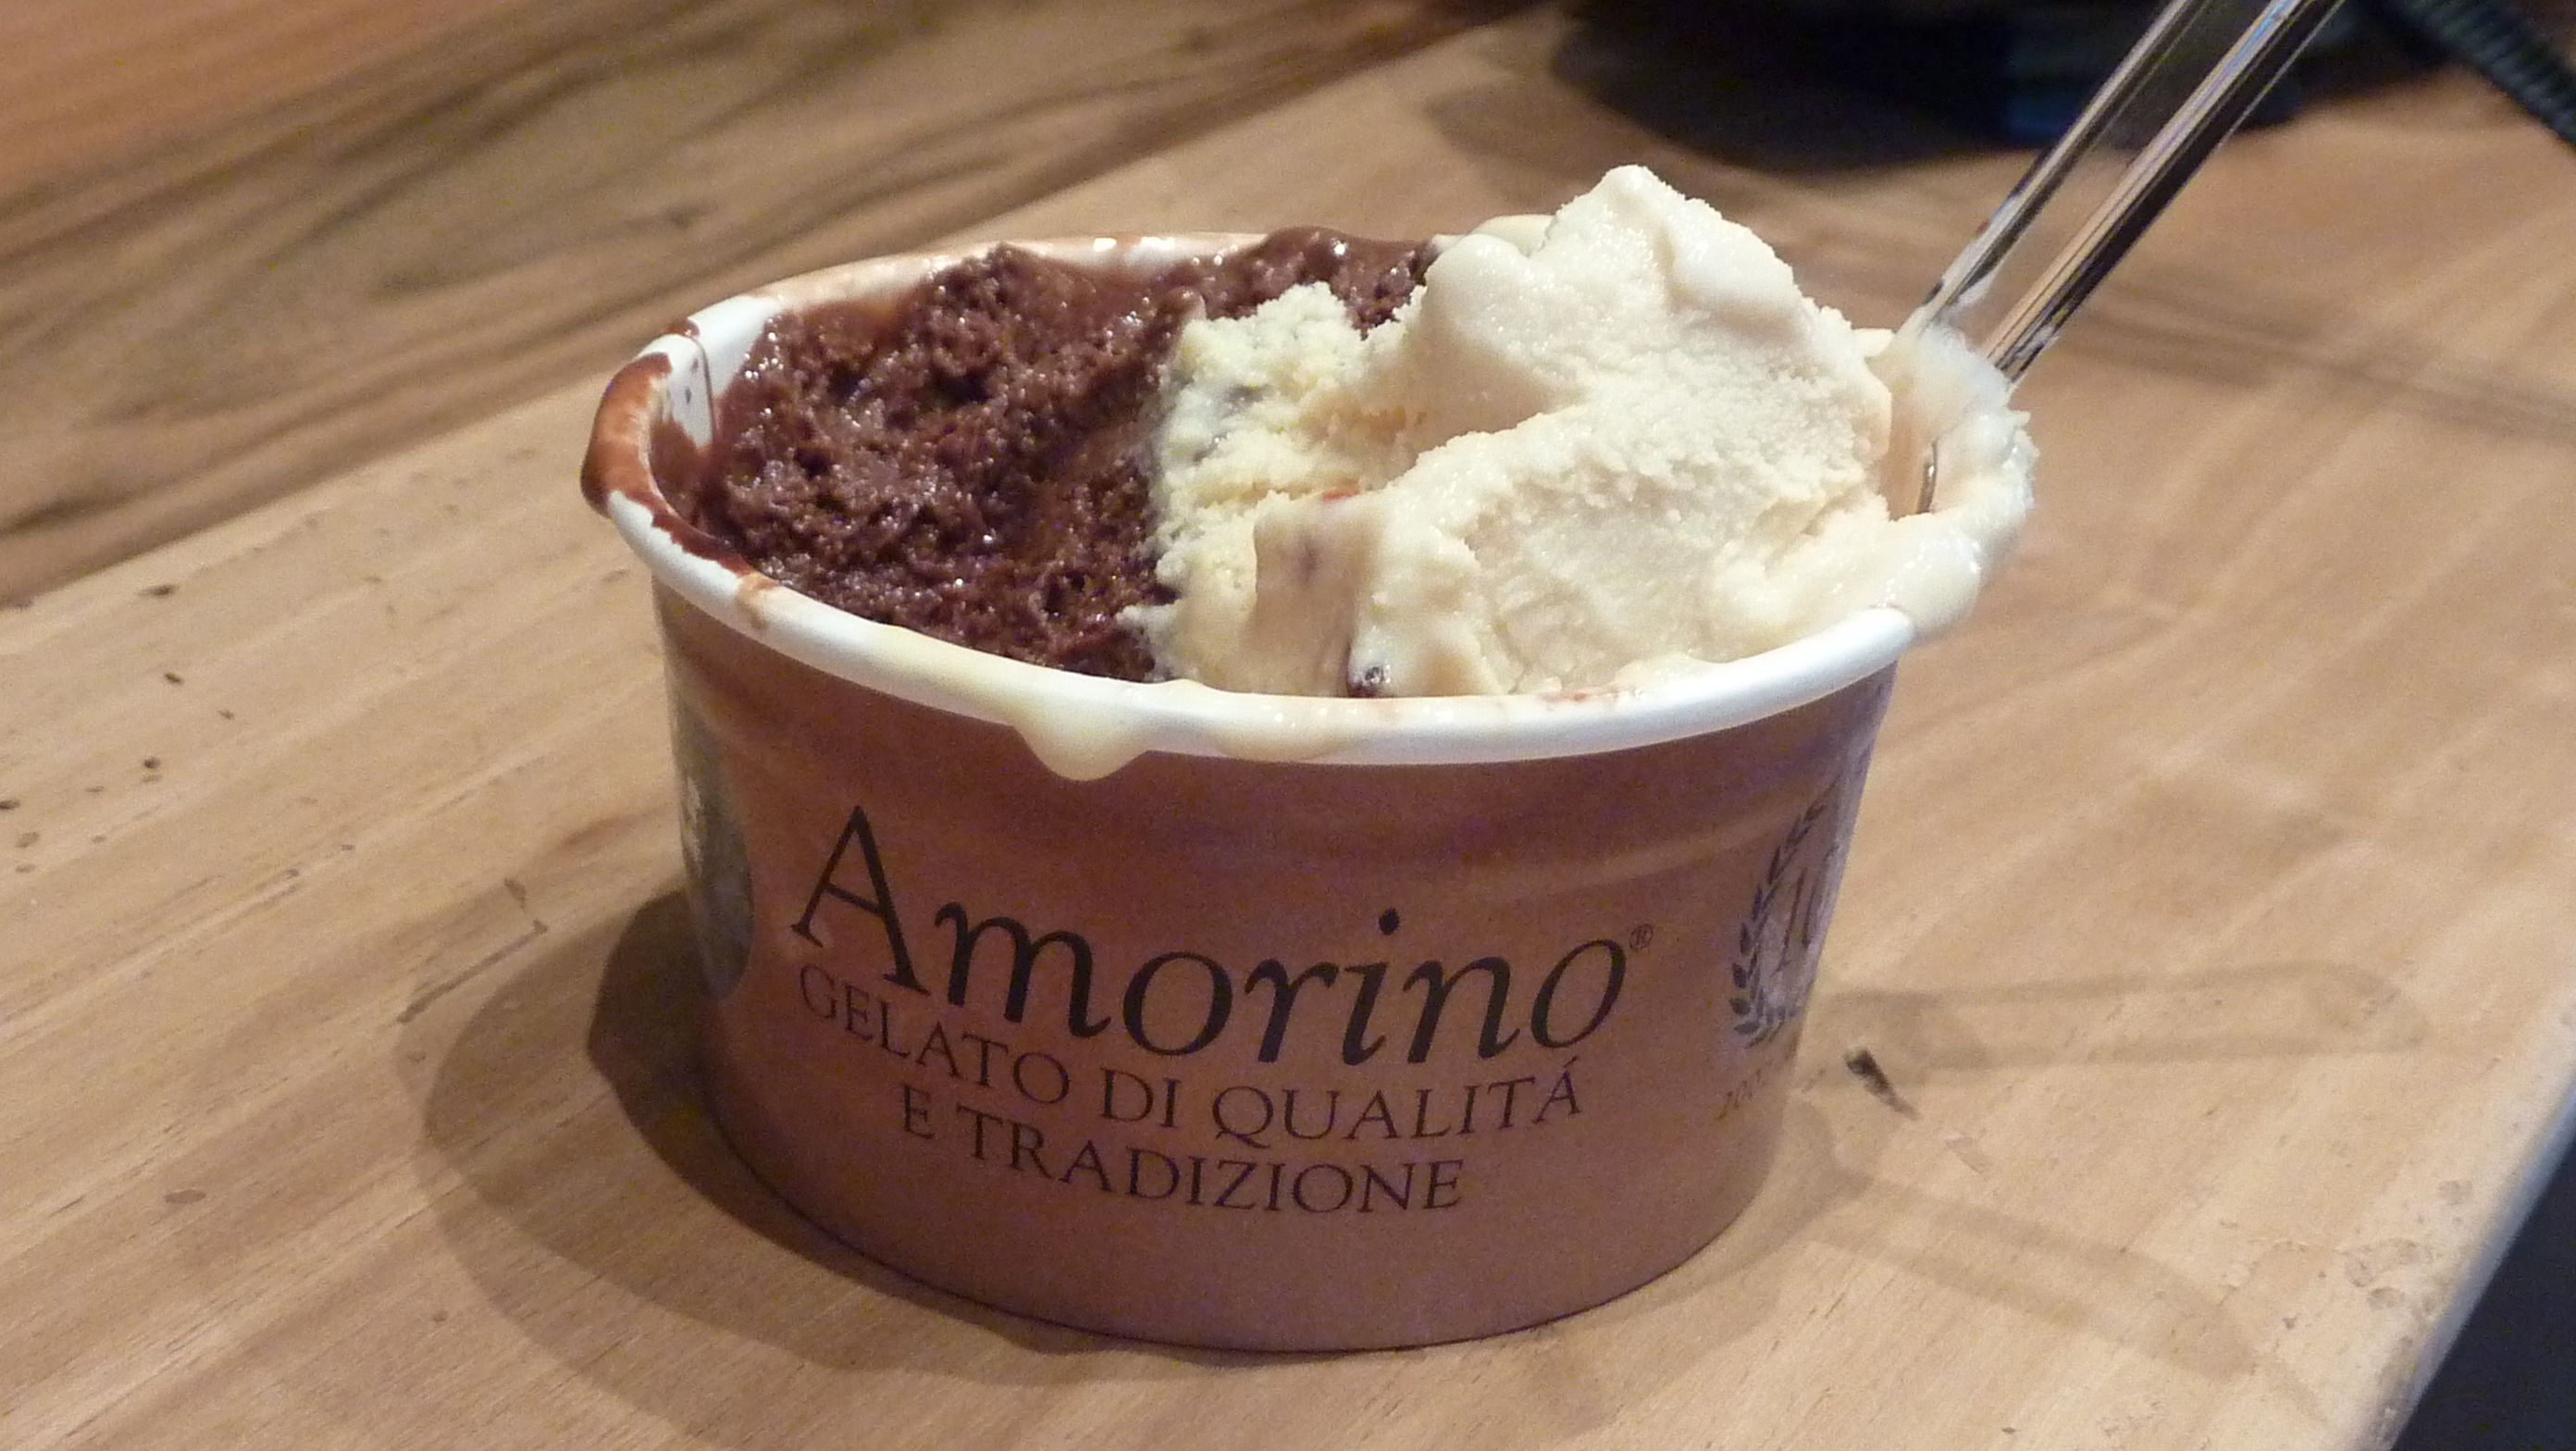 The best ice-cream I've ever eaten - Amorino...